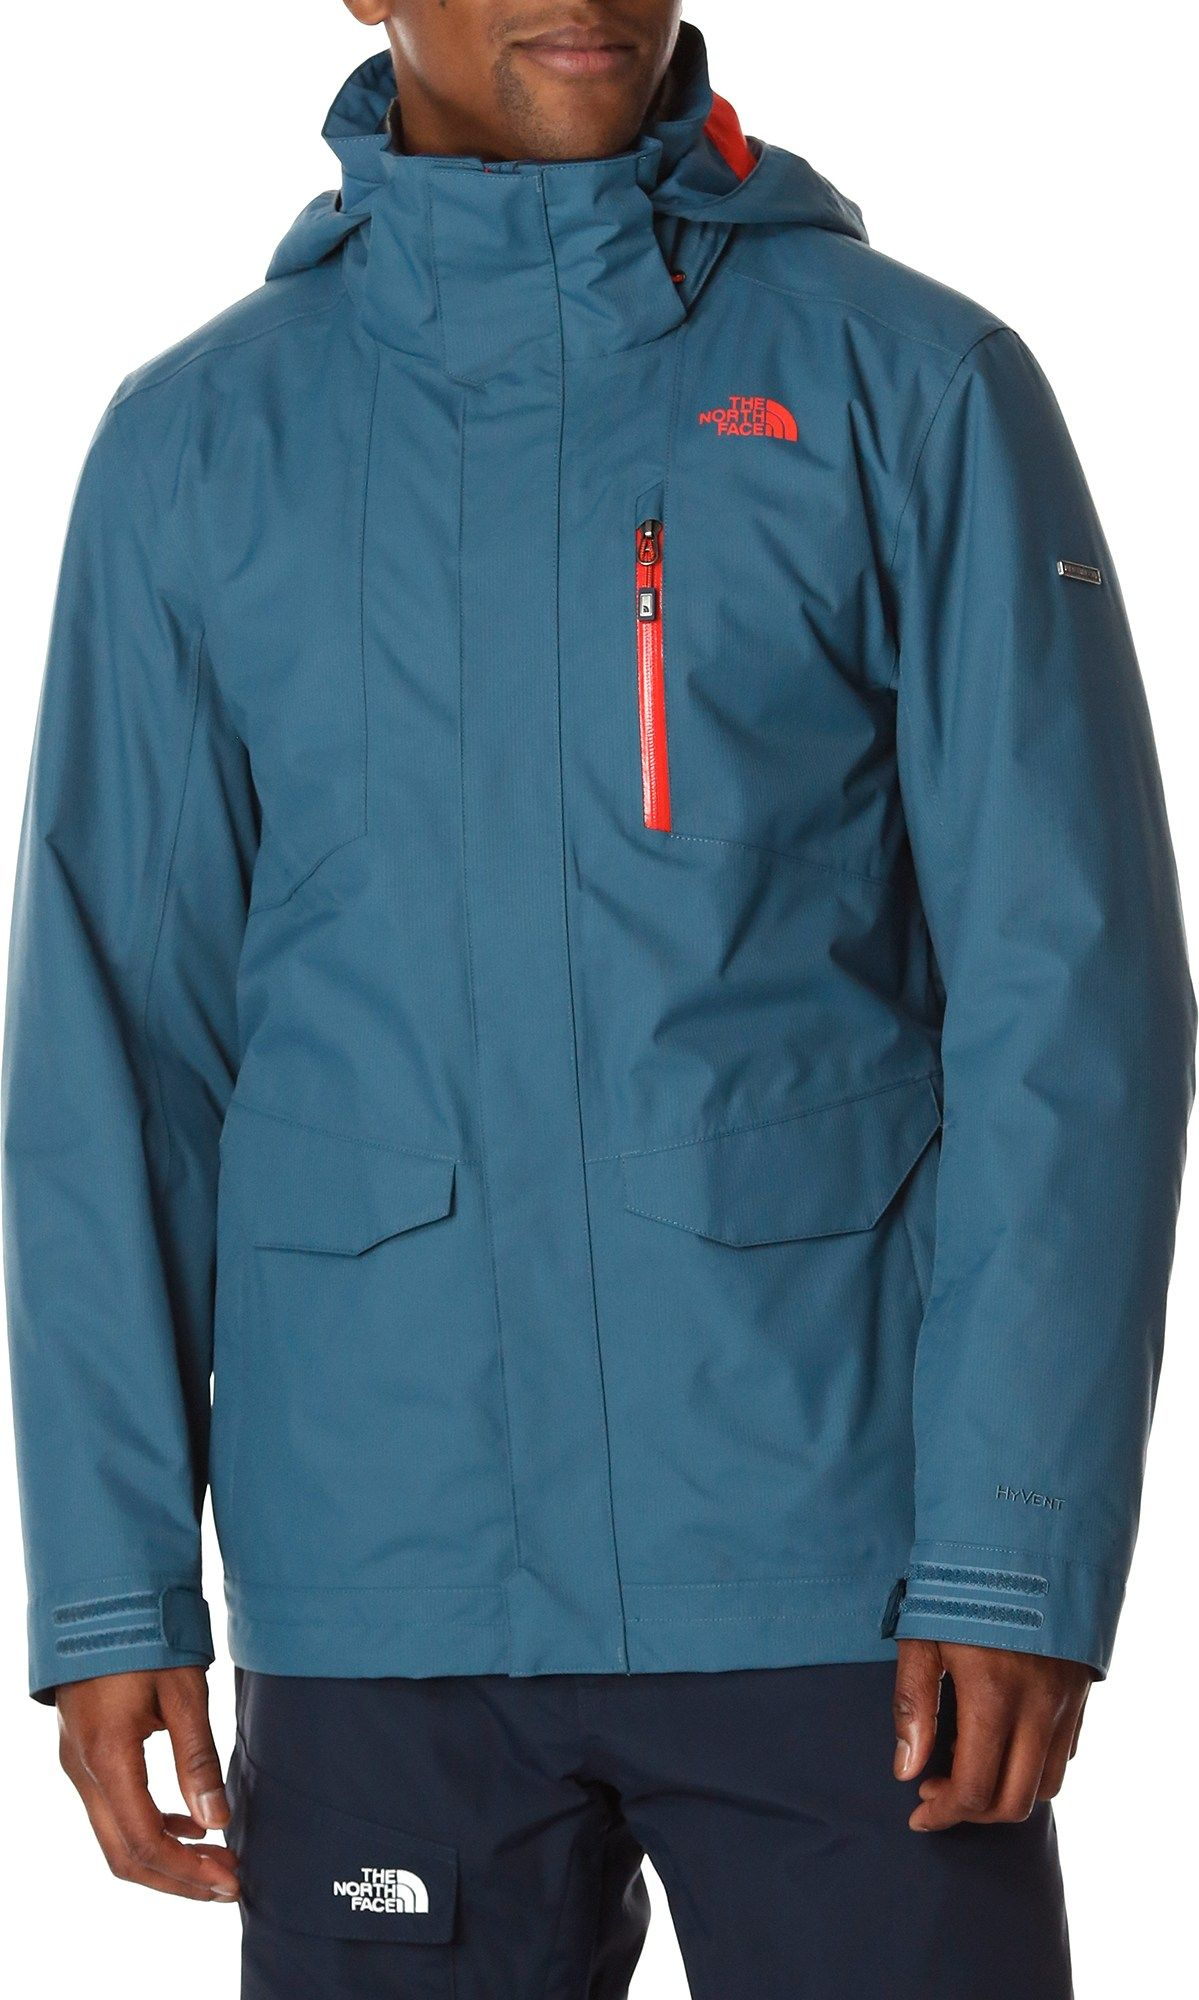 12e88ec610 The North Face Male Gregorio Thermoball Triclimate 3-In-1 Jacket - Men s